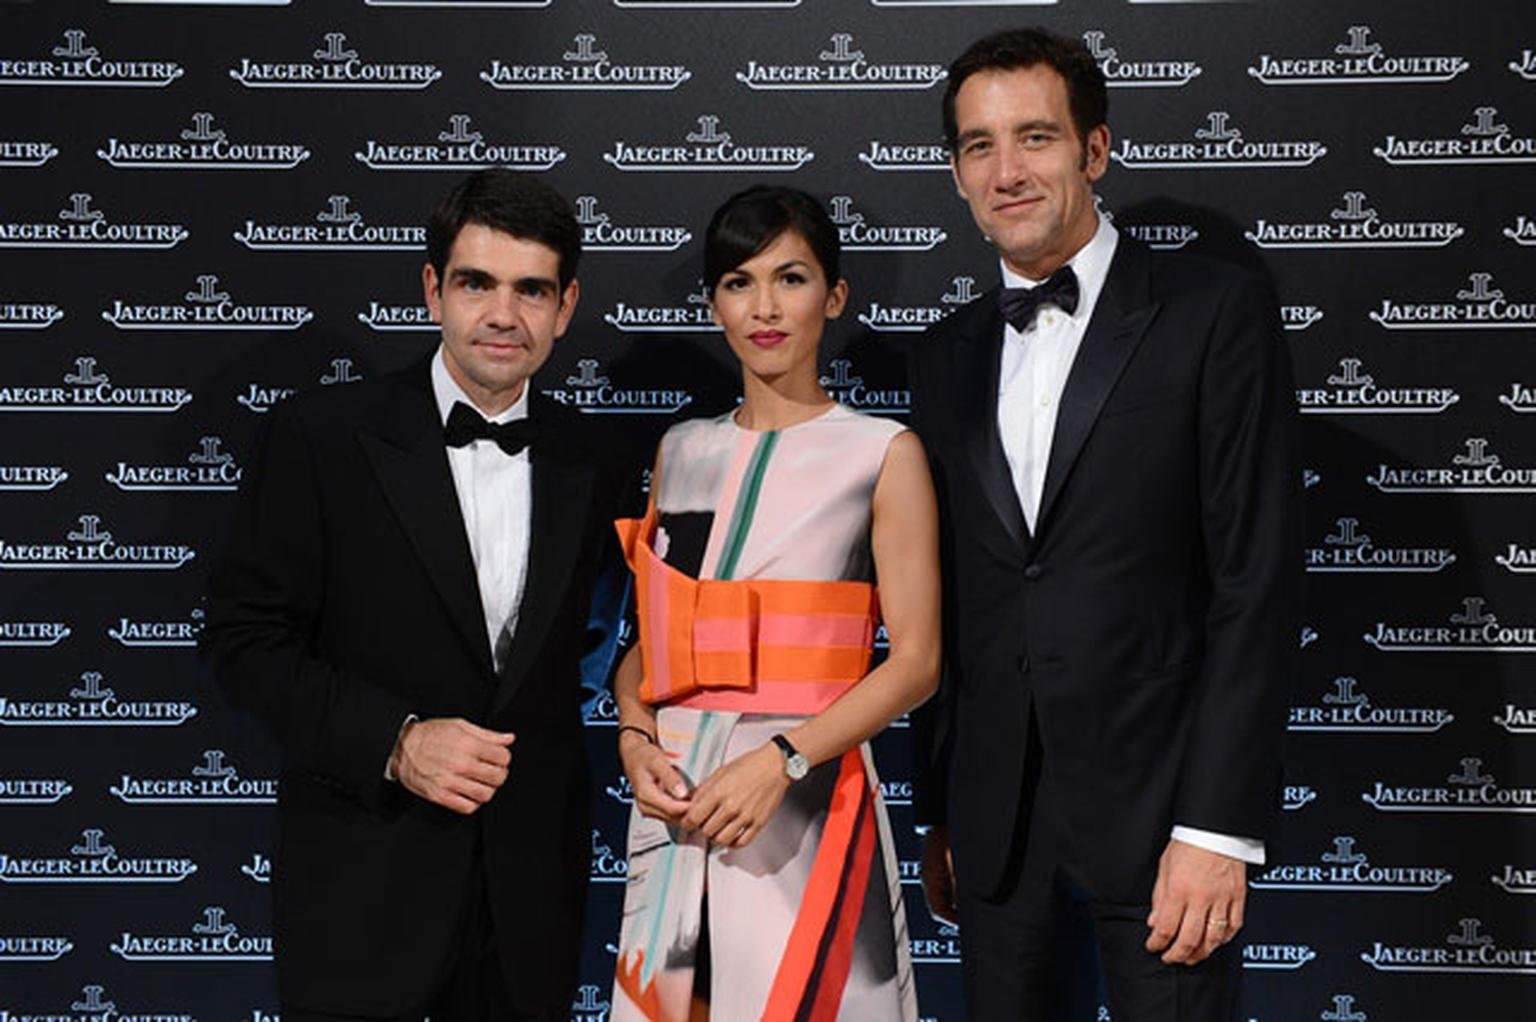 JLC-Jerome-Lambert-Jaeger-LeCoultre-CEO-Elodie-Young-Clive-Owen-at-Jaeger-LeCoultre-Rendez-Vous-in-Venice